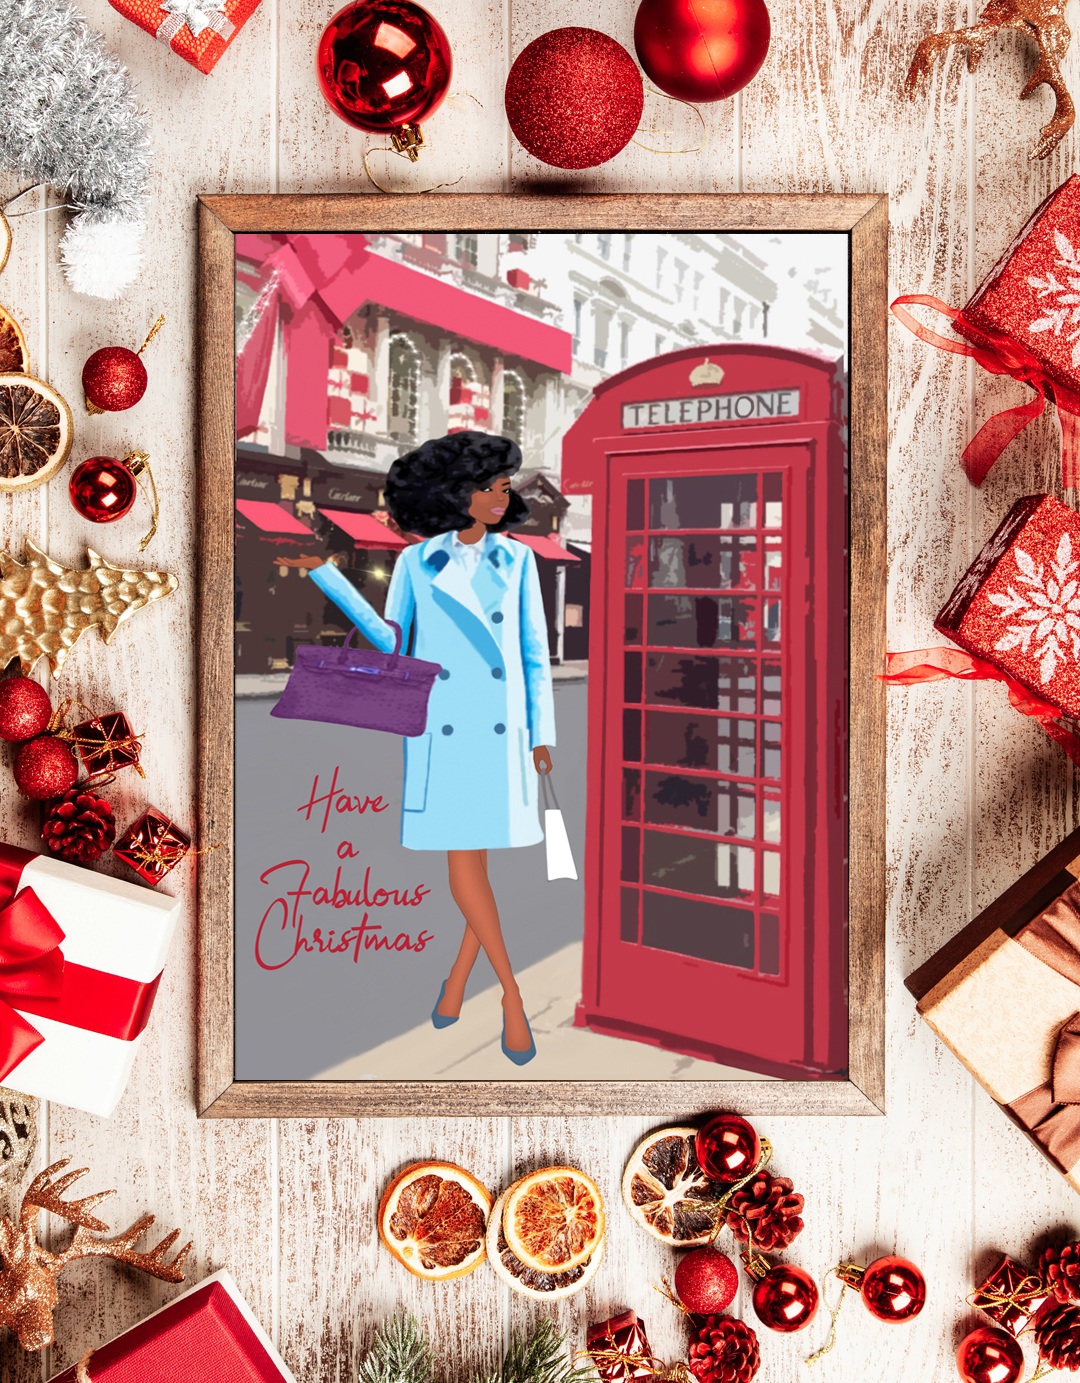 Chic Christmas cards